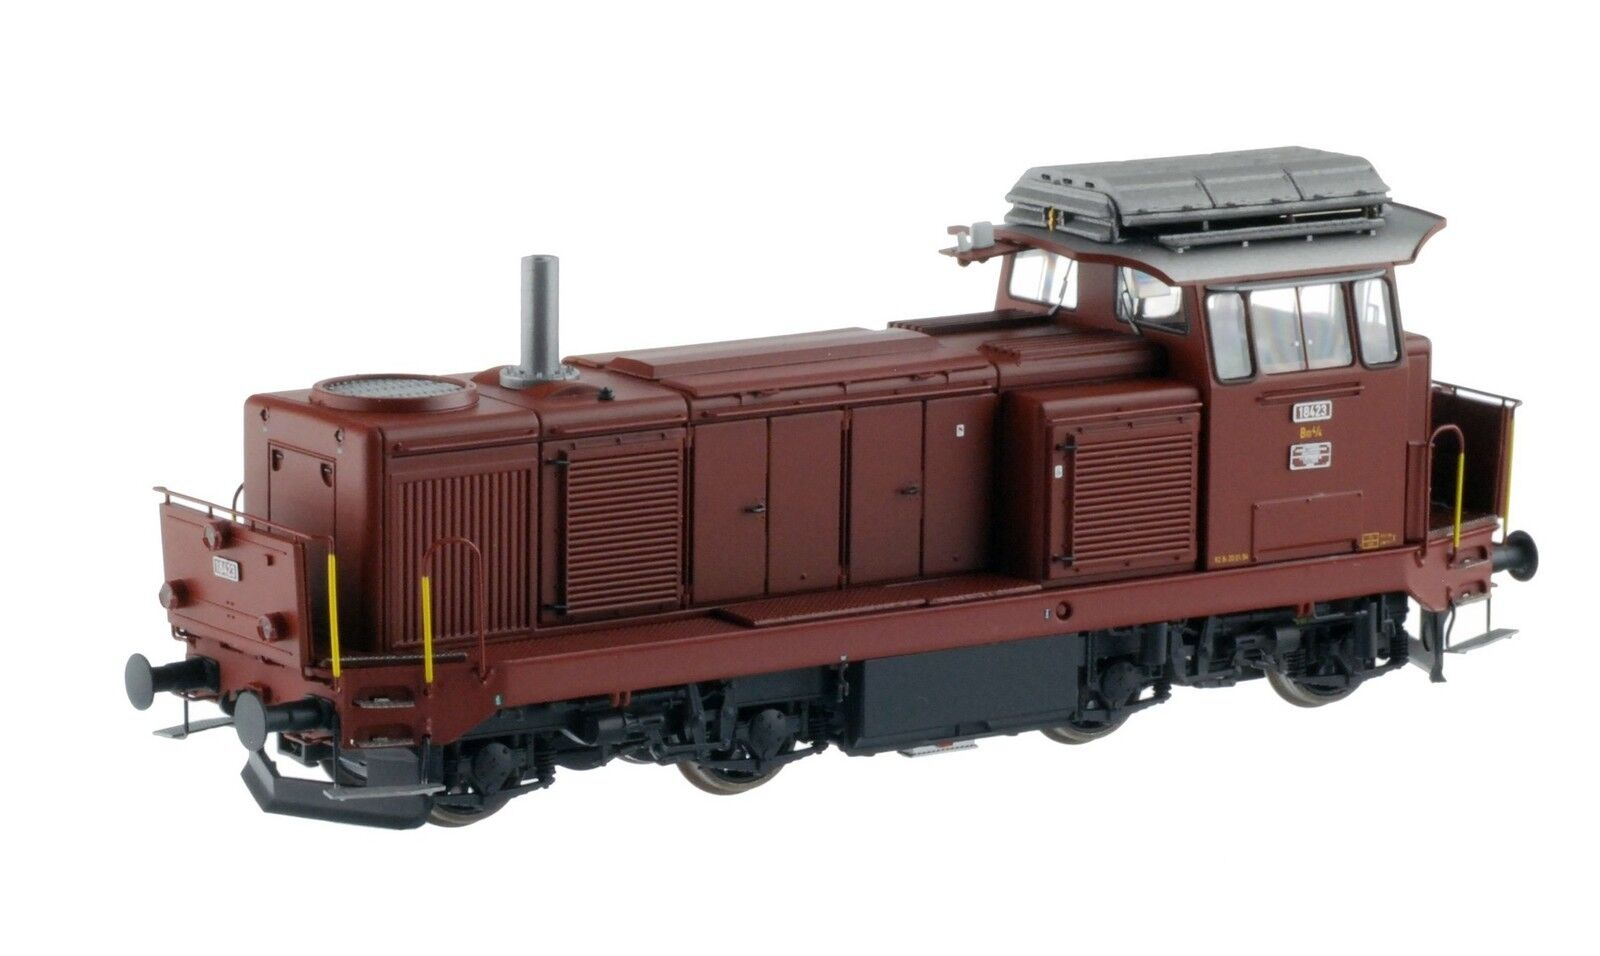 LS Models 17063S SBB CFF FFS Bm4 4 Diesellok Brown 3 Light Ep4b DCC Sound NEW + OVP